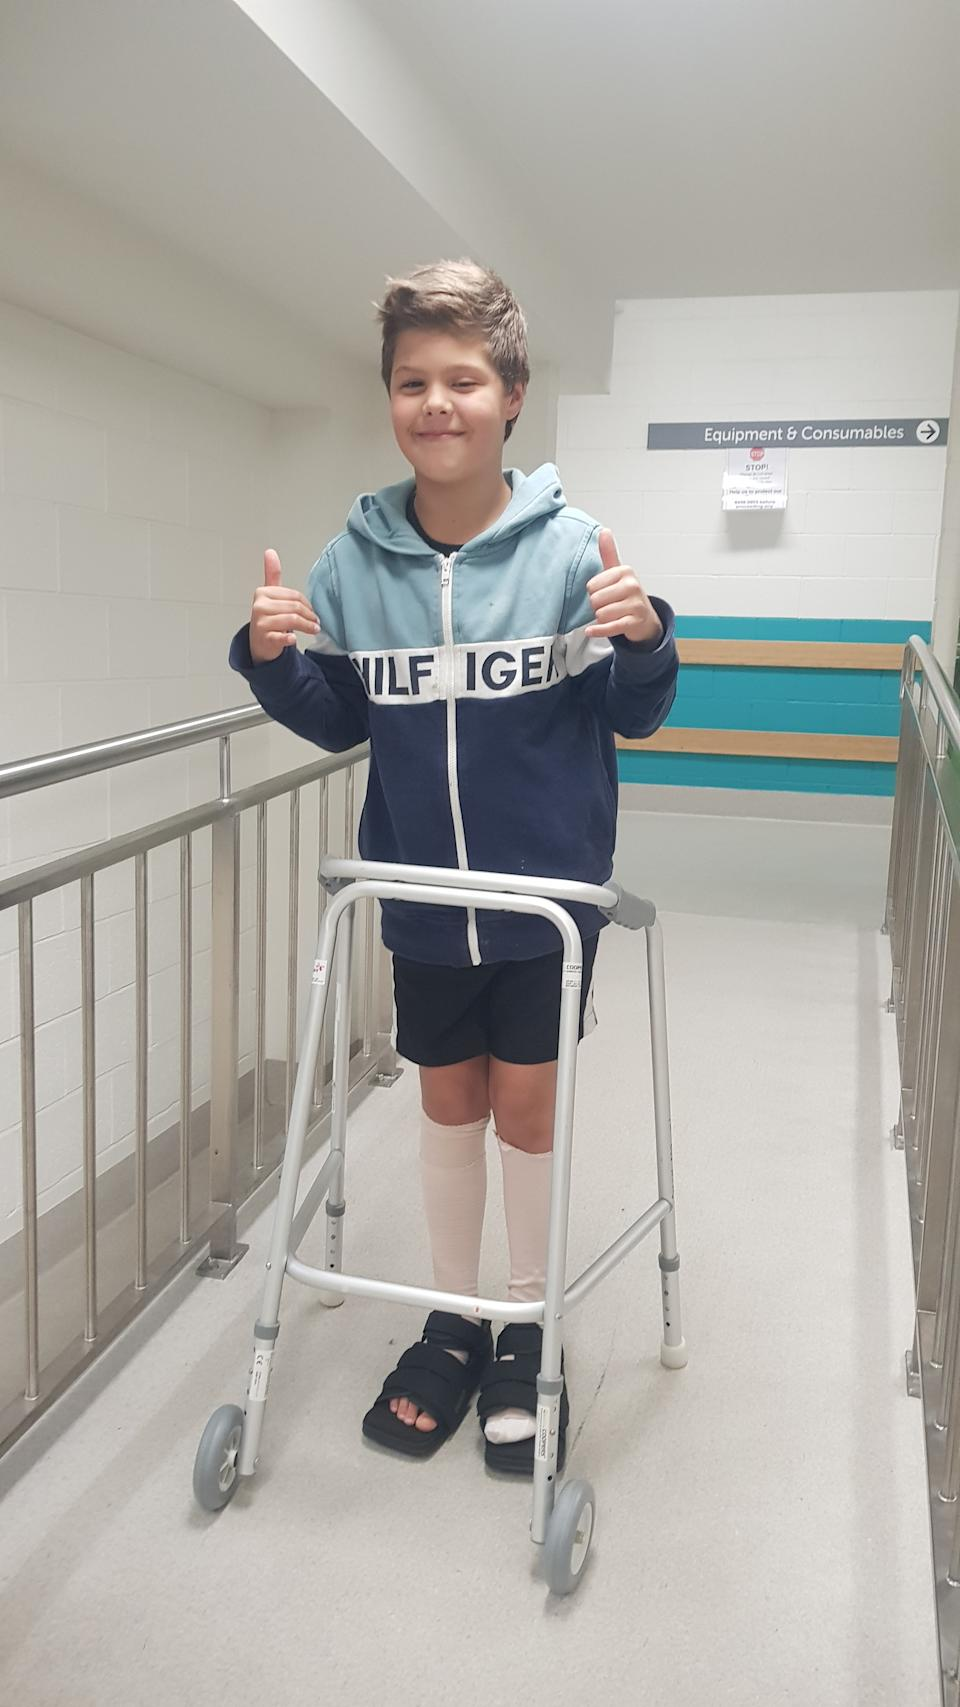 A photo of Liam Rogers walking after surgery for his burned feet.